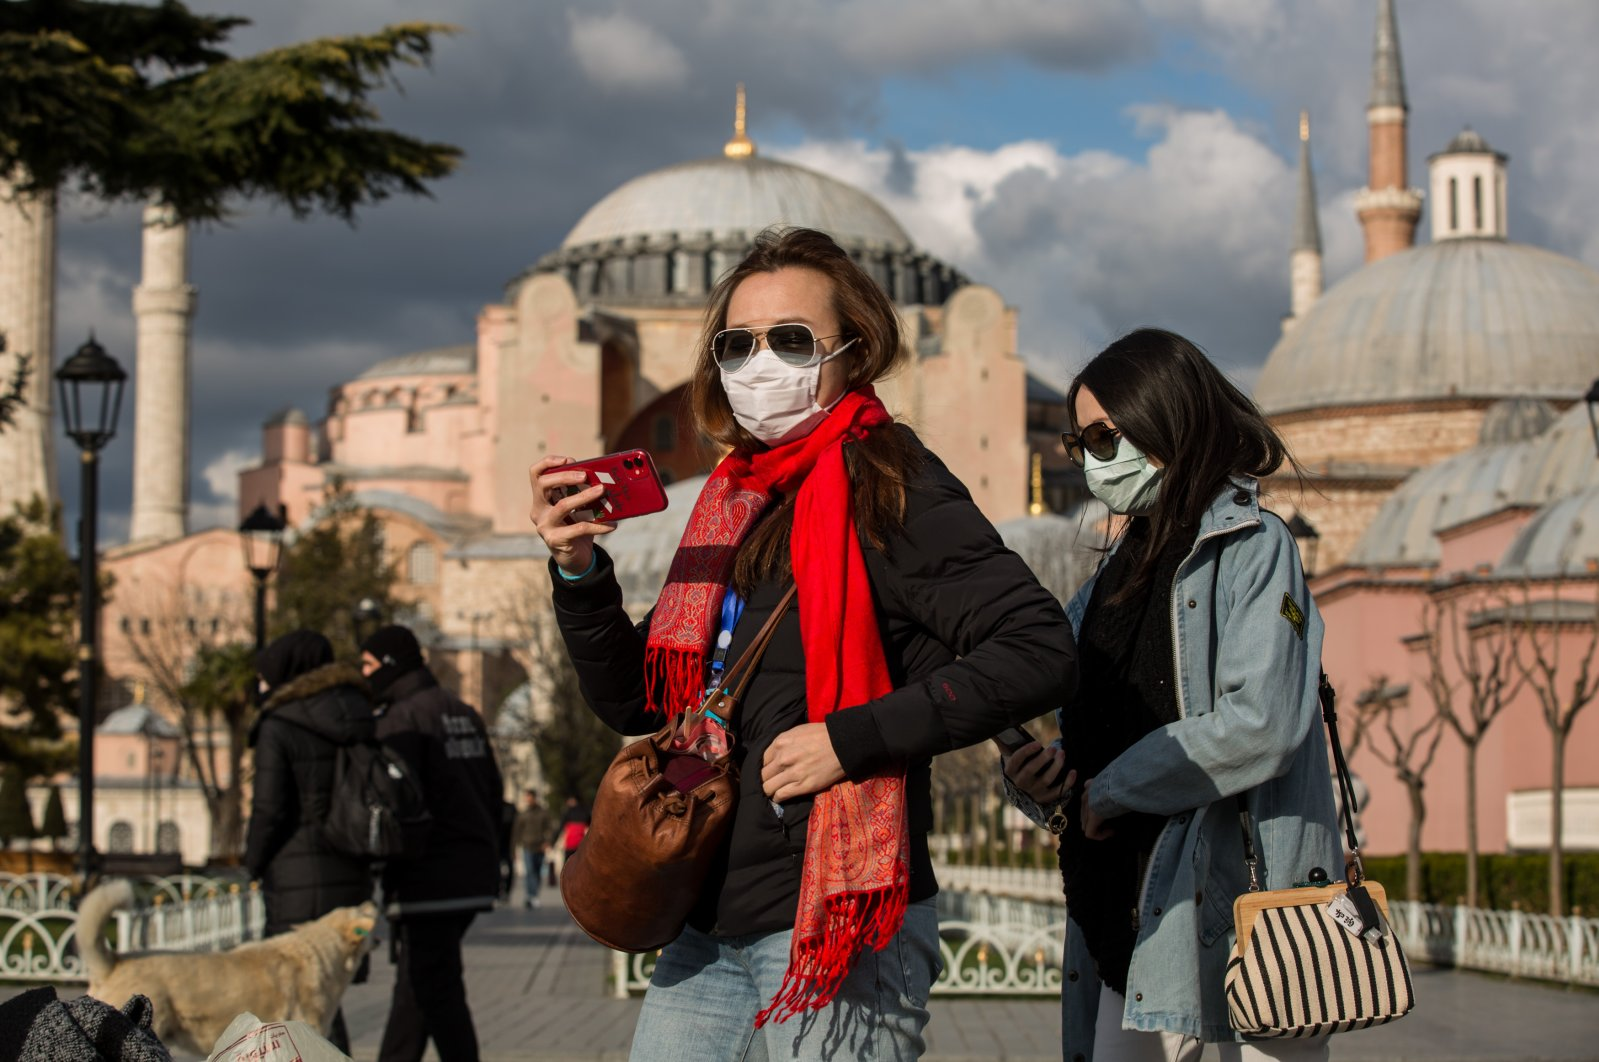 Tourists wearing protective face masks due to coronavirus concerns stroll in Sultanahmet Square in Istanbul, Turkey, Wednesday, March 18, 2020. The Byzantine-era monument of Hagia Sophia is seen in the background. (DHA Photo)